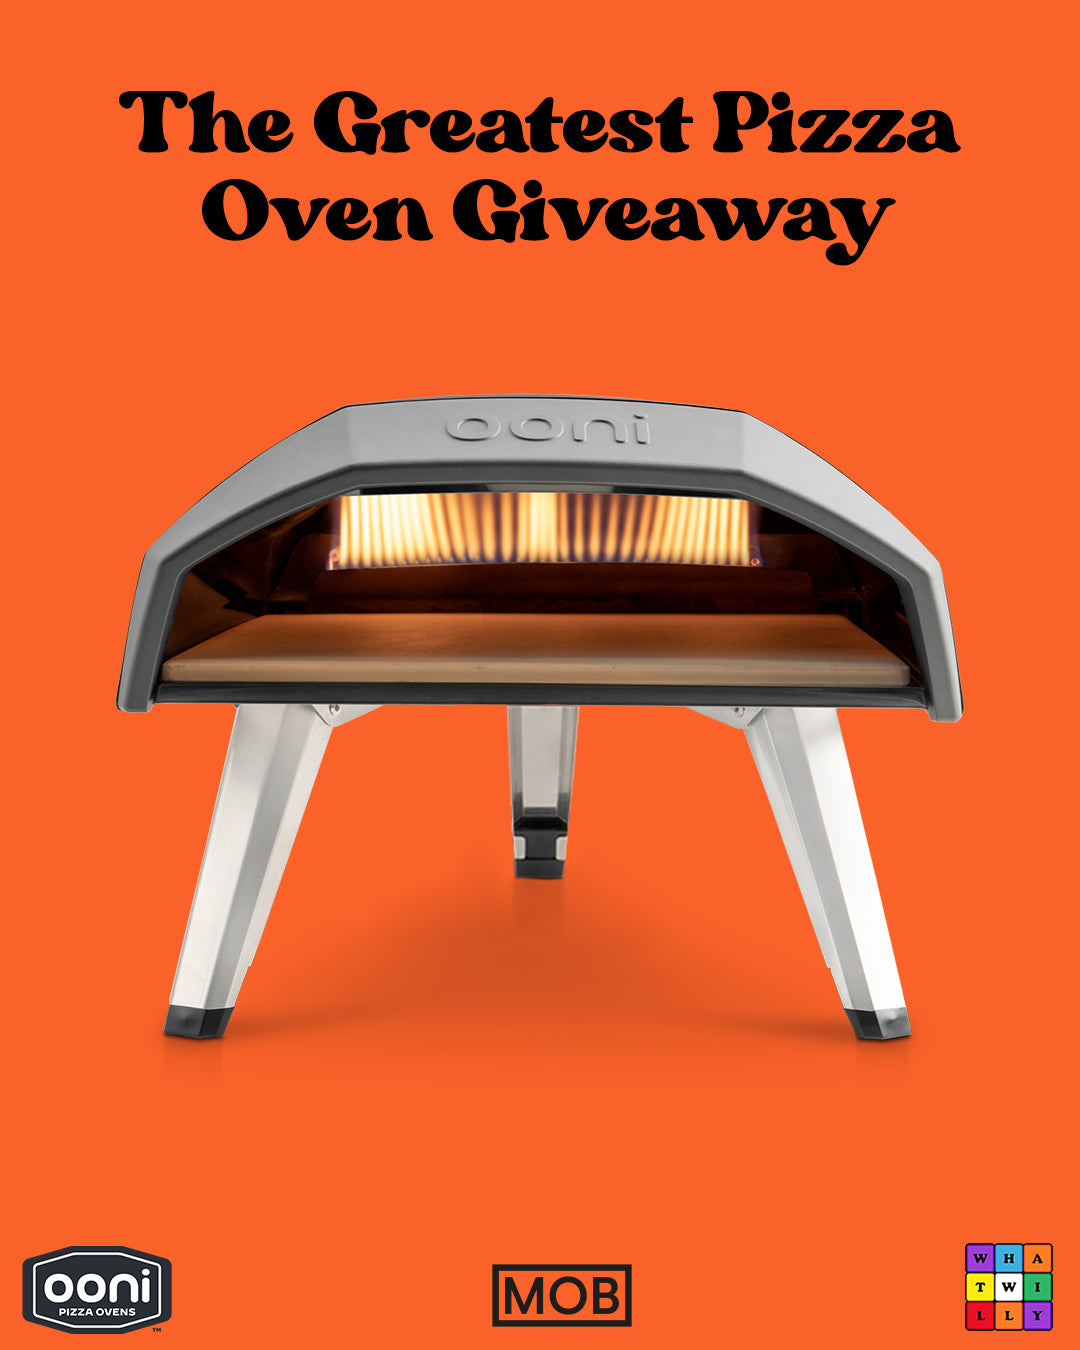 MOB Kitchen x Ooni Giveaway